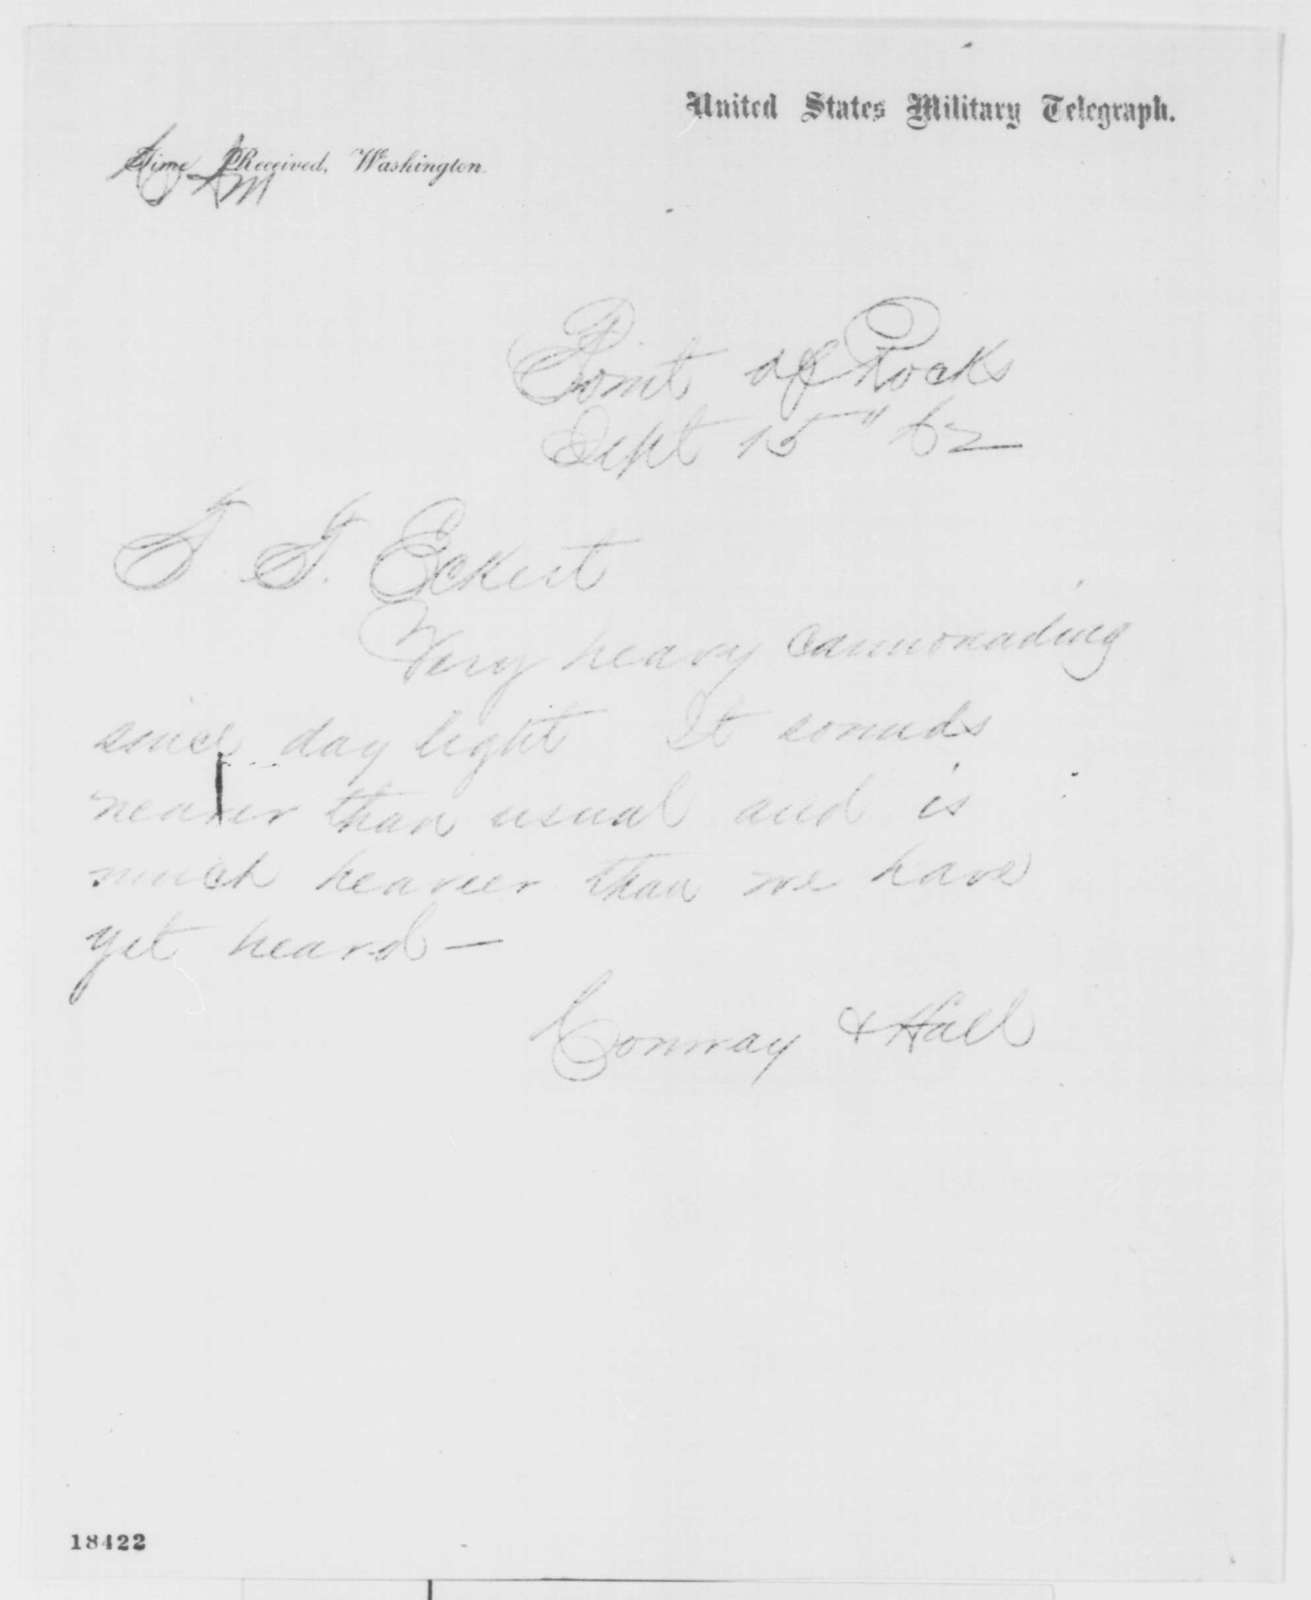 Conway and Hall to Thomas T. Eckert, Monday, September 15, 1862  (Telegram concerning military affairs)